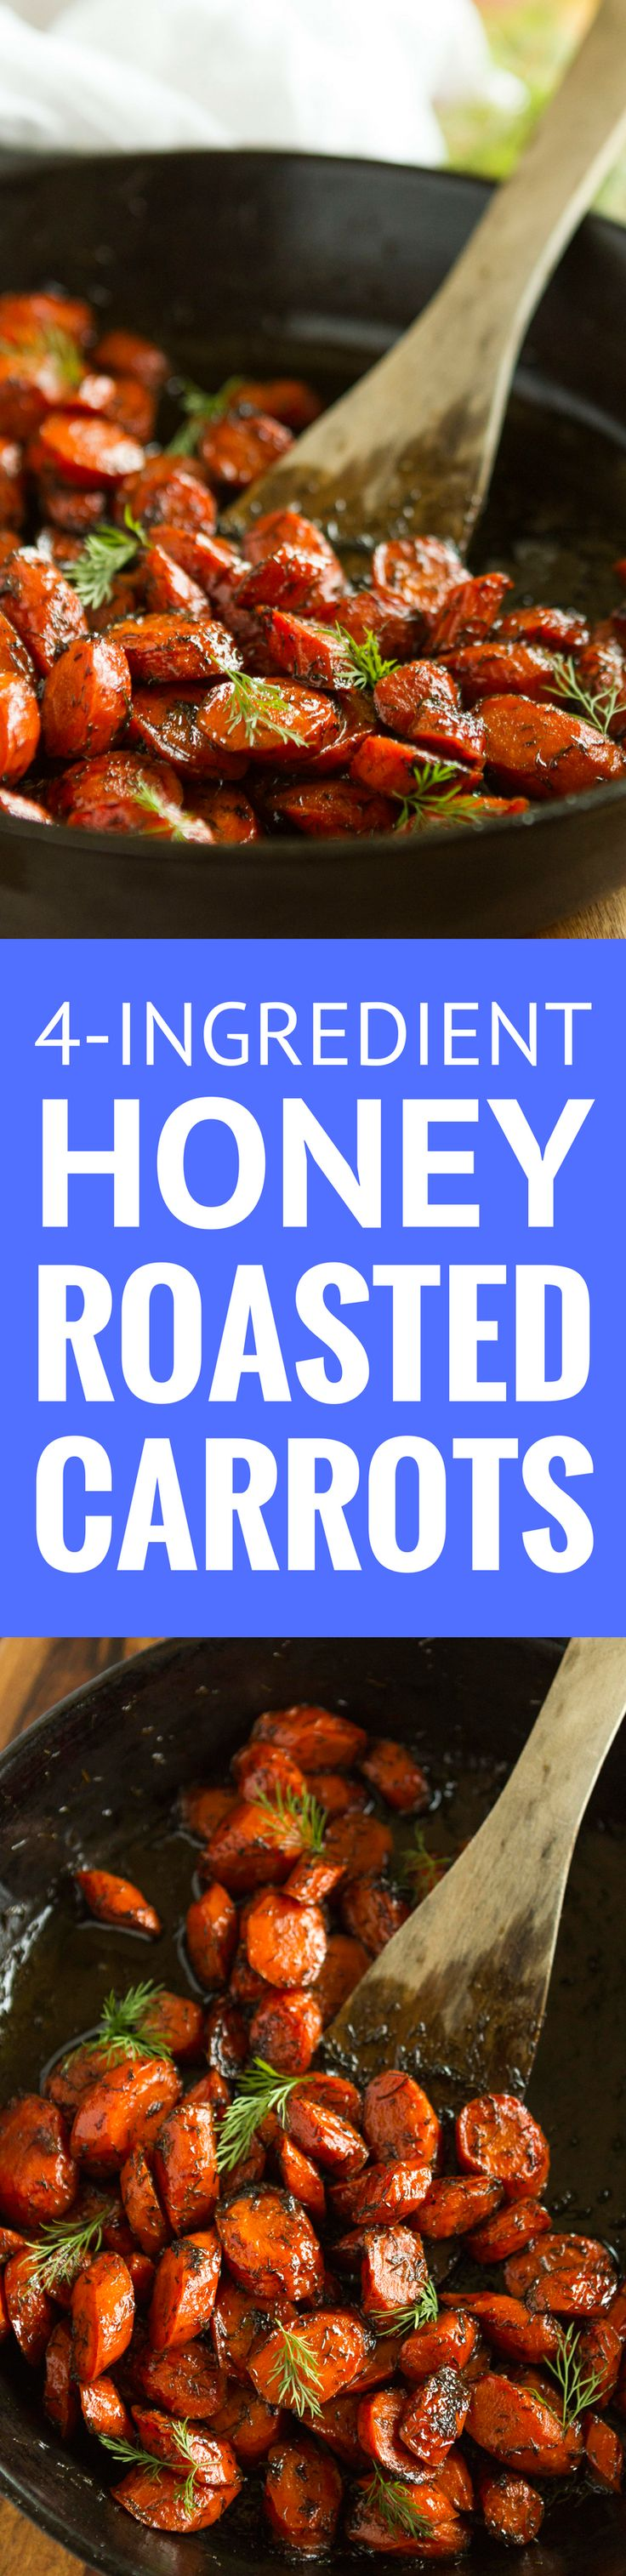 Brown Butter Honey Roasted Carrots with Dill -- this easy roasted carrots recipe is sure to get the whole family to eat their veggies! Just 4 simple ingredients: brown butter, carrots (of course), honey and dried dill… Totally amazing!!! | roasted carrots honey | roasted carrots oven | roasted carrots healthy | find the recipe on unsophisticook.com #sidedishes #carrots #carrotrecipes #easyrecipe